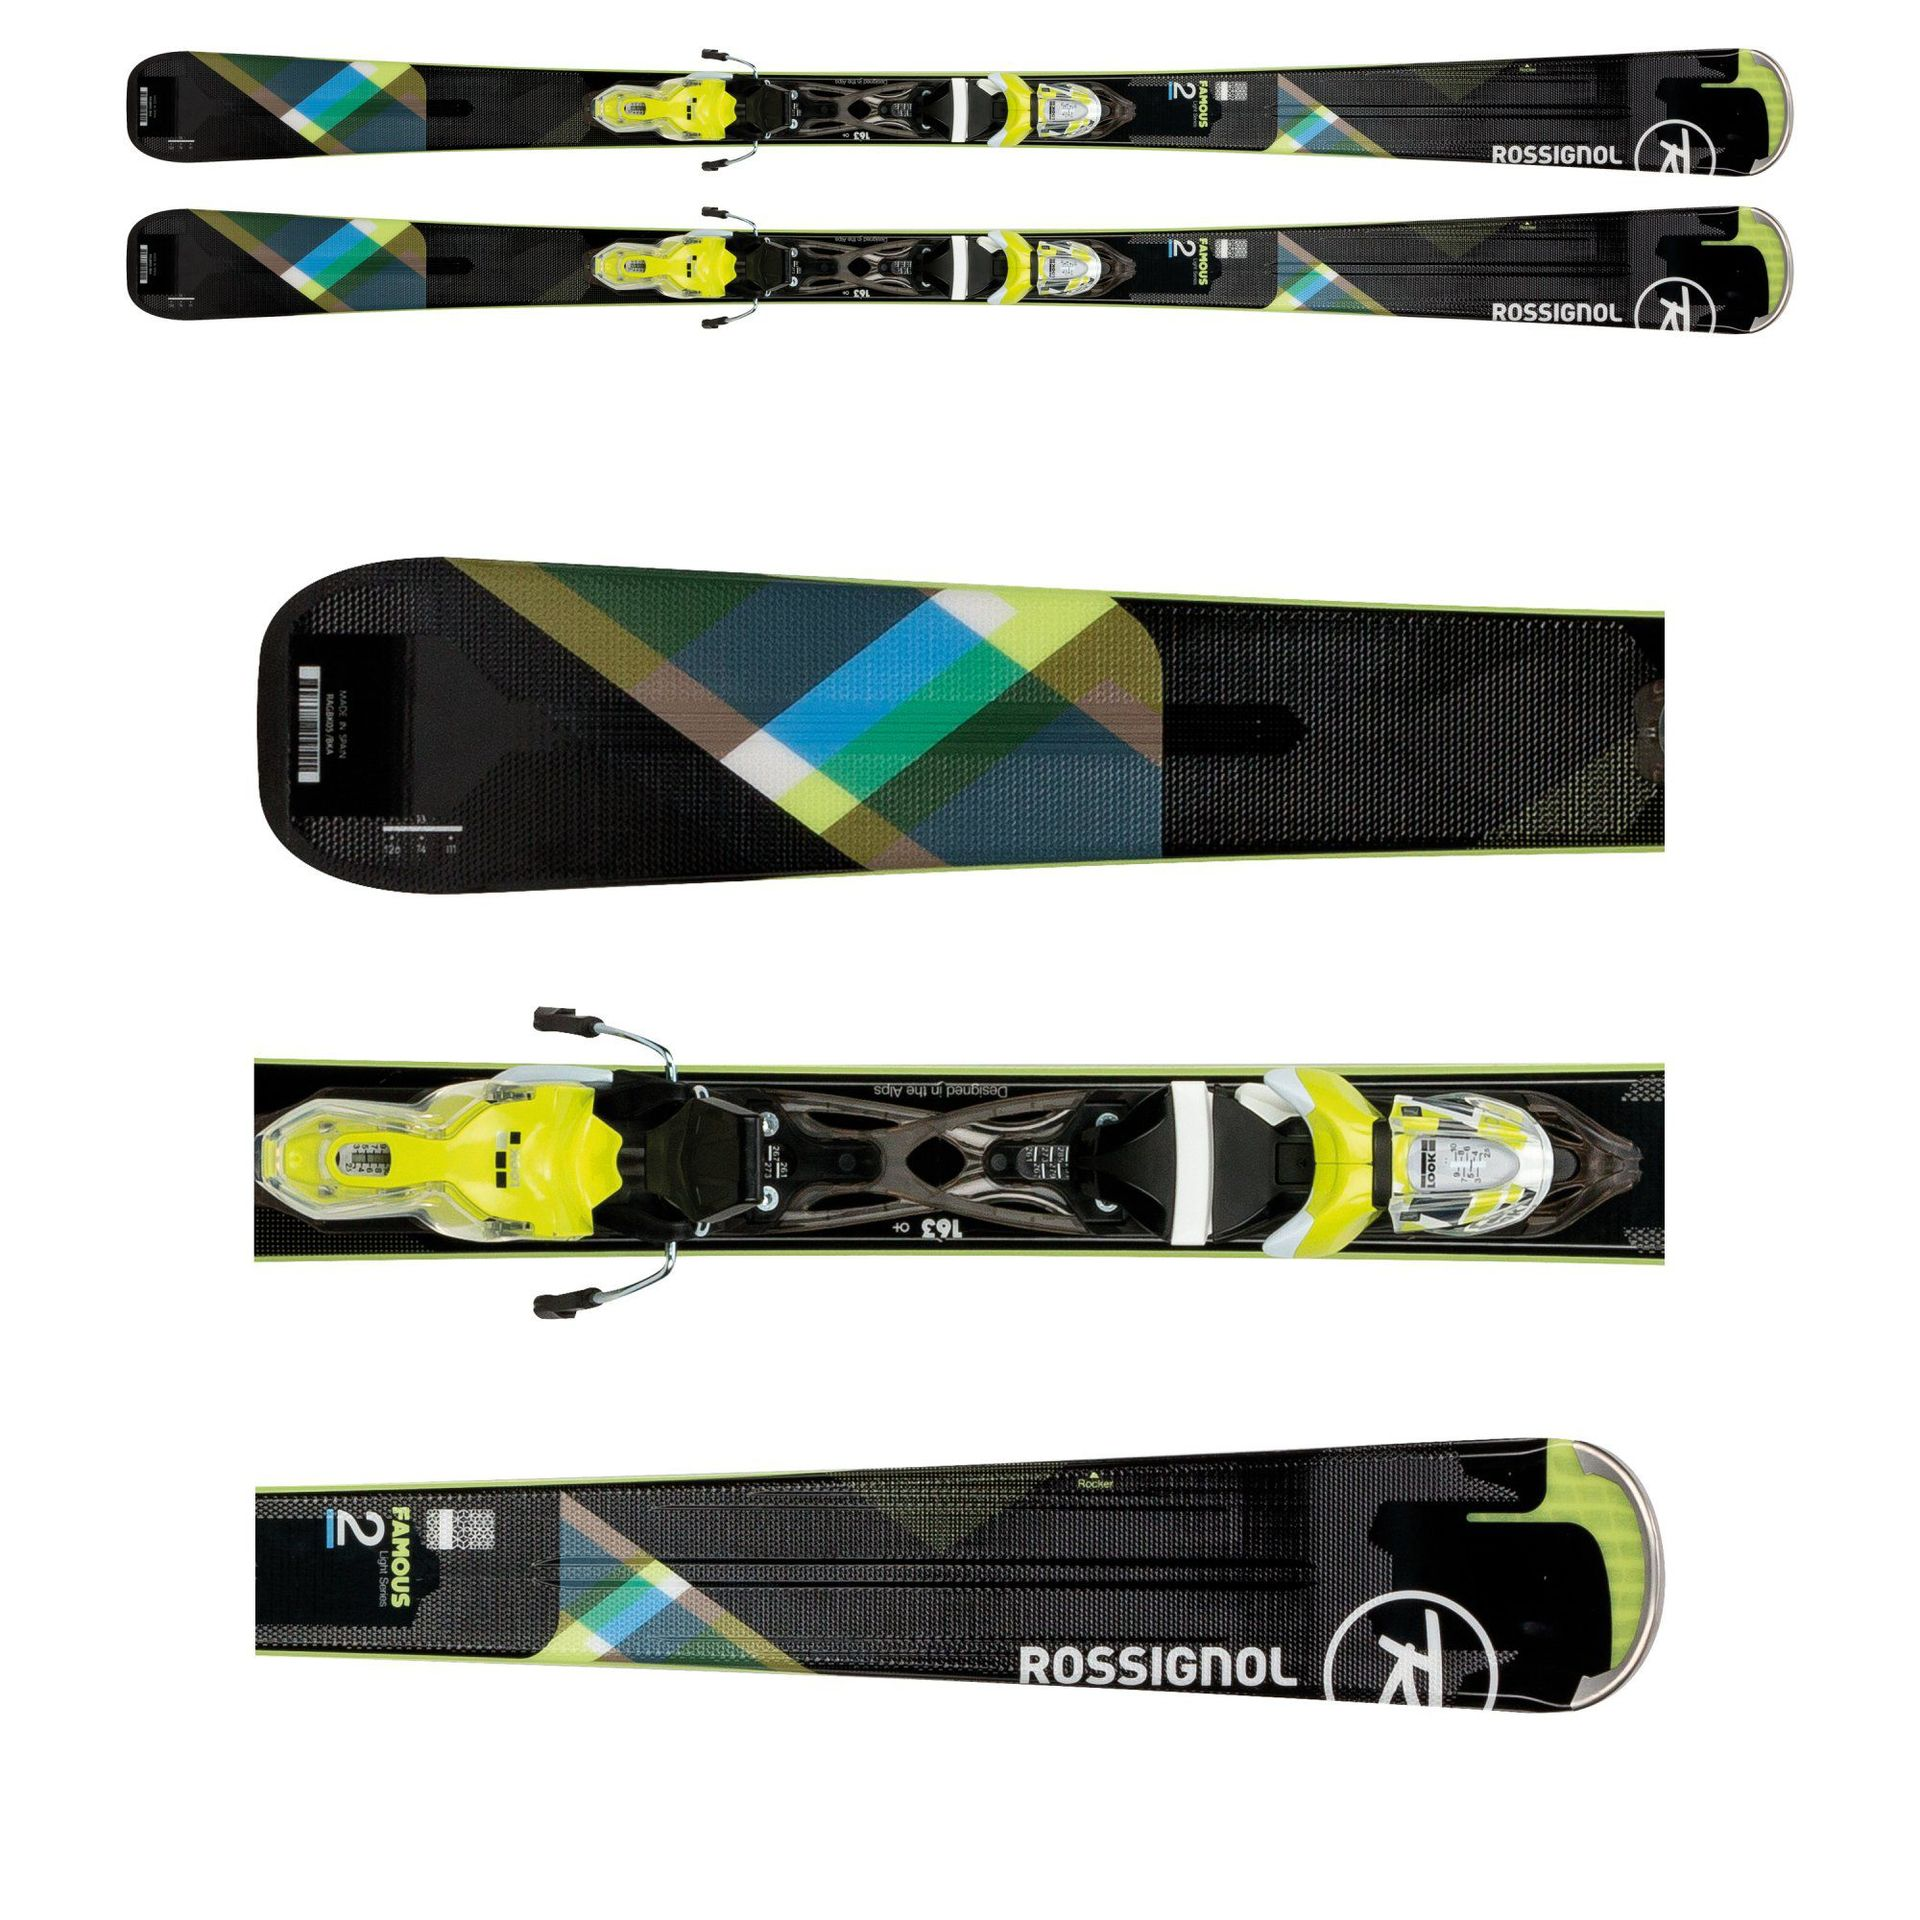 NARTY ROSSIGNOL FAMOUS 2 RRG05BK 1